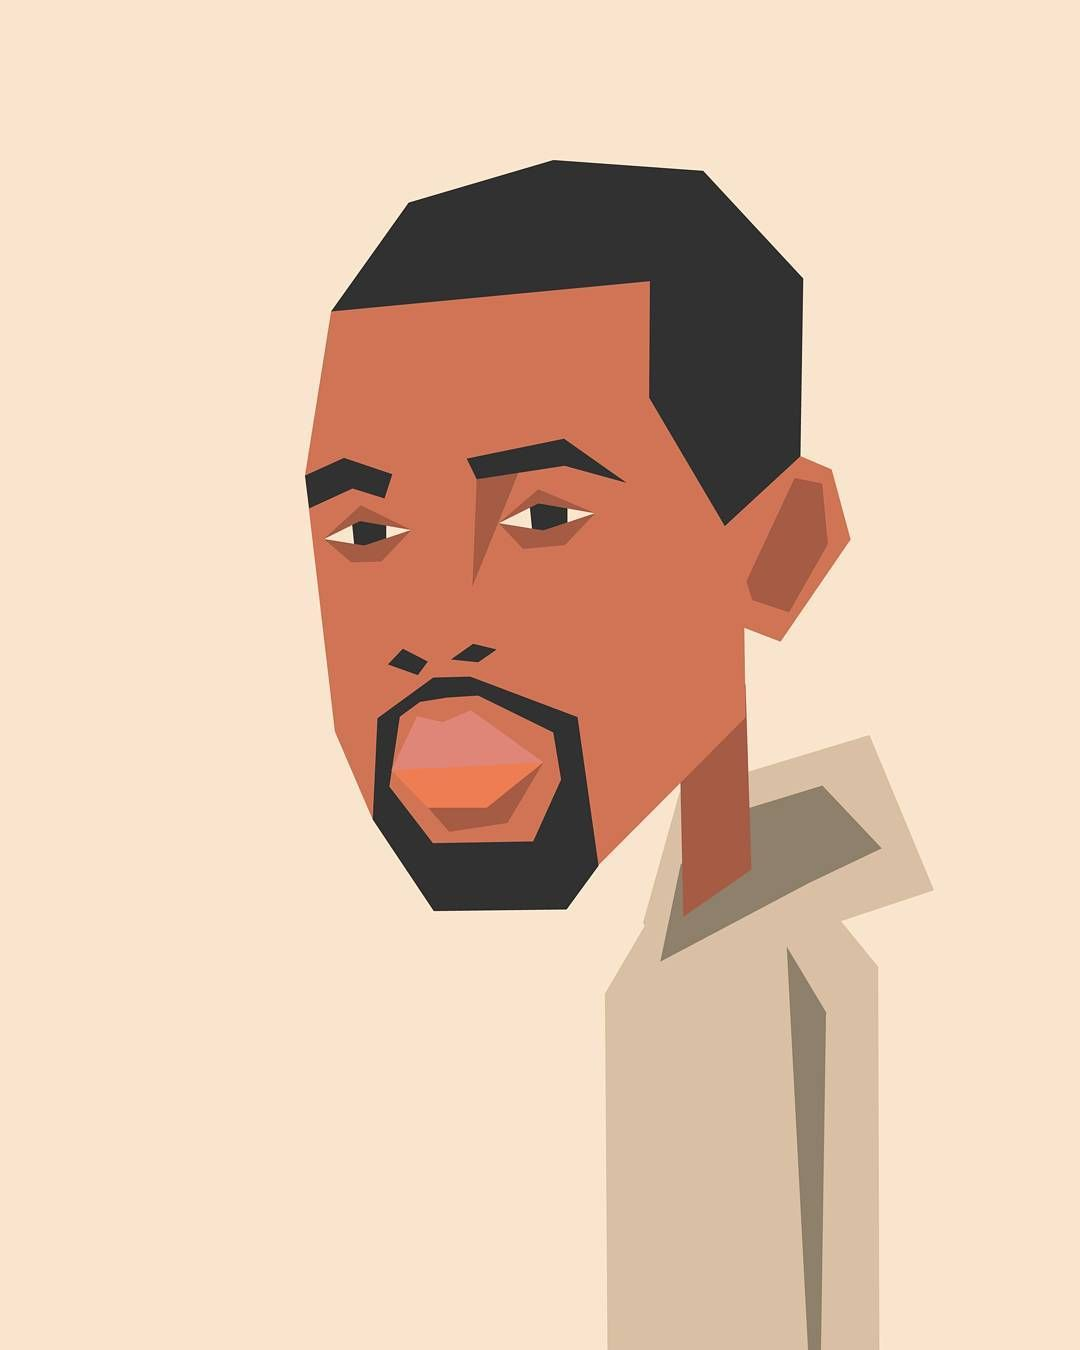 Pin By Sean Hewitt On Smarty Arty Instagram Posts Arty Kanye